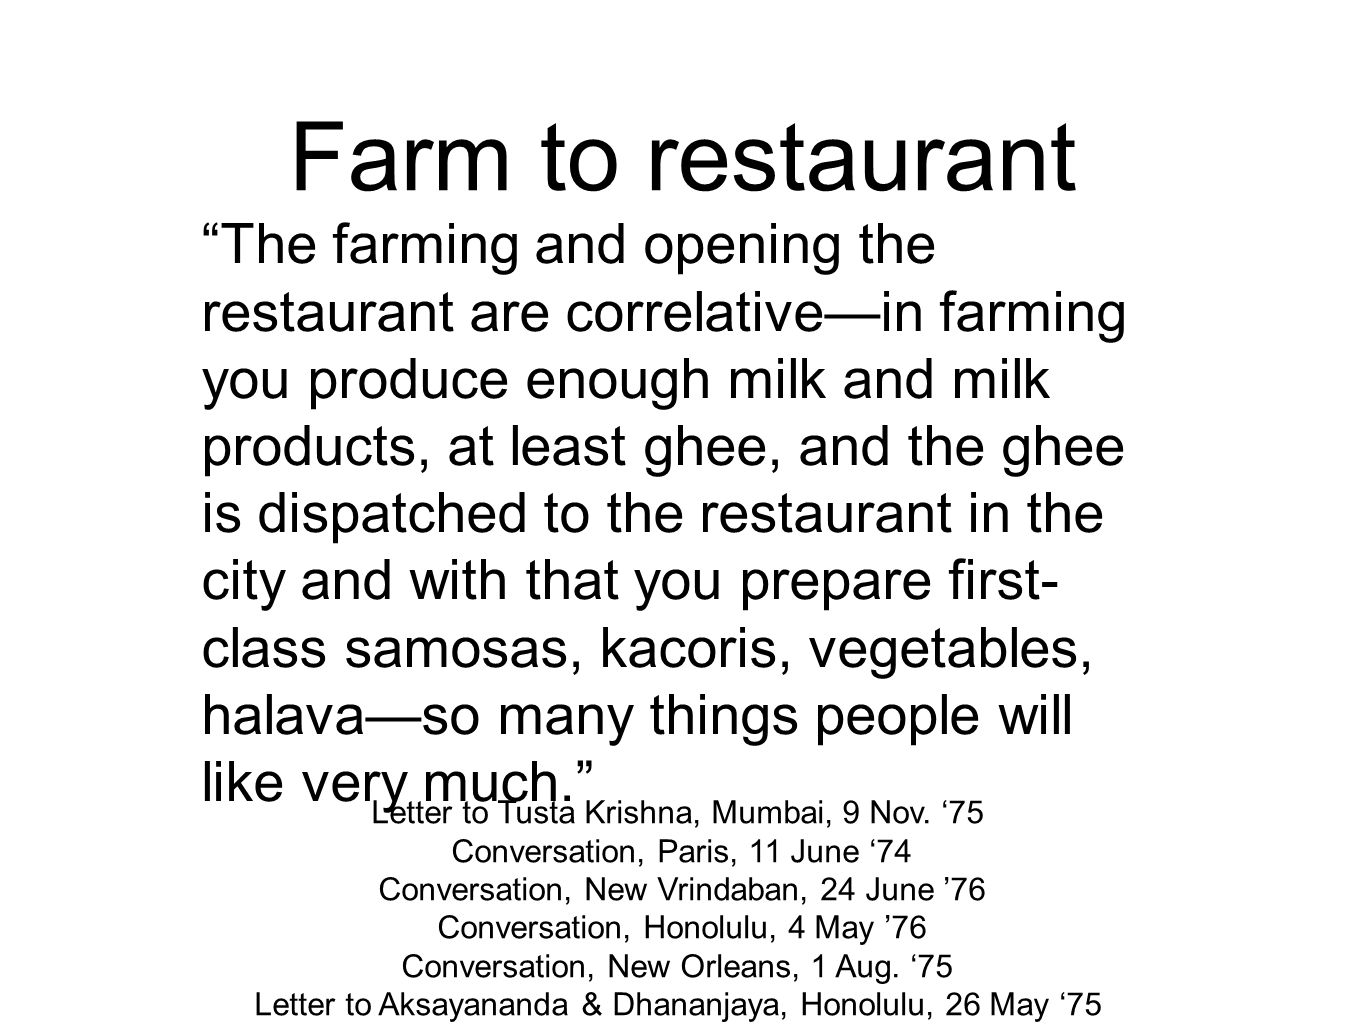 Farm to restaurant The farming and opening the restaurant are correlative—in farming you produce enough milk and milk products, at least ghee, and the ghee is dispatched to the restaurant in the city and with that you prepare first- class samosas, kacoris, vegetables, halava—so many things people will like very much. Letter to Tusta Krishna, Mumbai, 9 Nov.